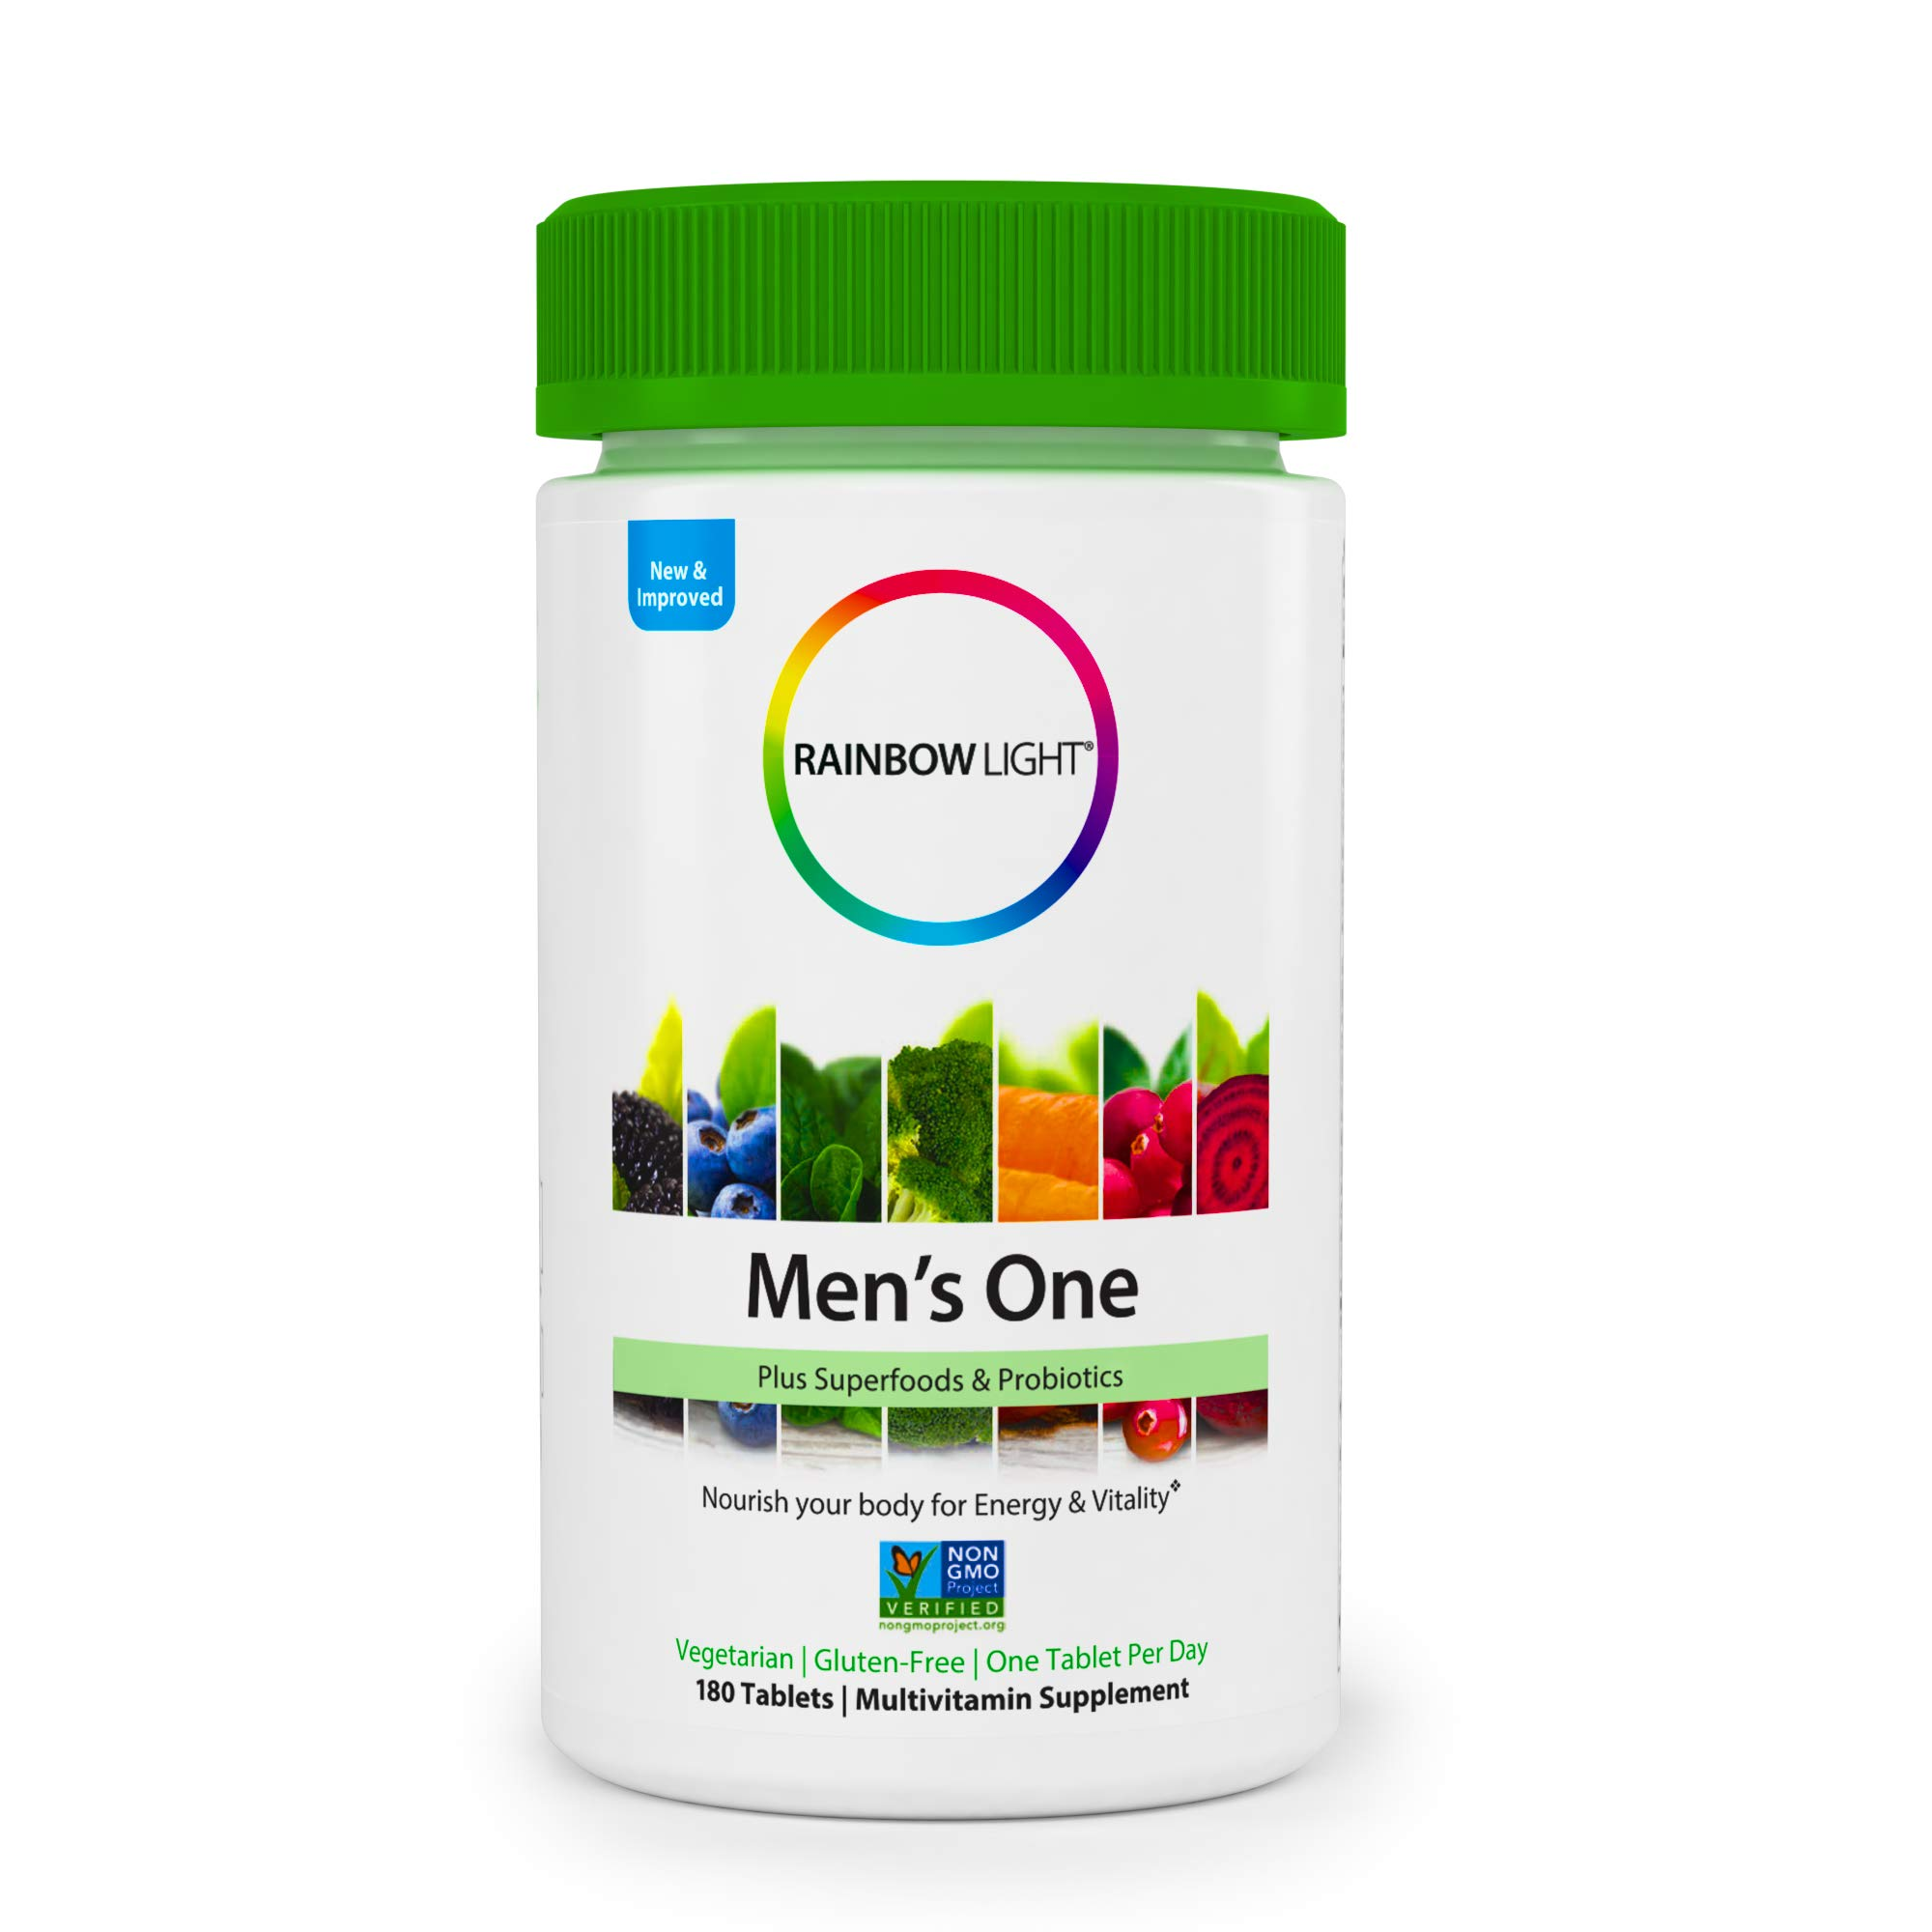 Rainbow Light - Men's One Multivitamin Non-GMO Bonus Size - Plus Superfoods, Probiotics, and Plant-Source Enzymes; Vegetarian and Gluten Free - 180 Tablets by Rainbow Light (Image #2)